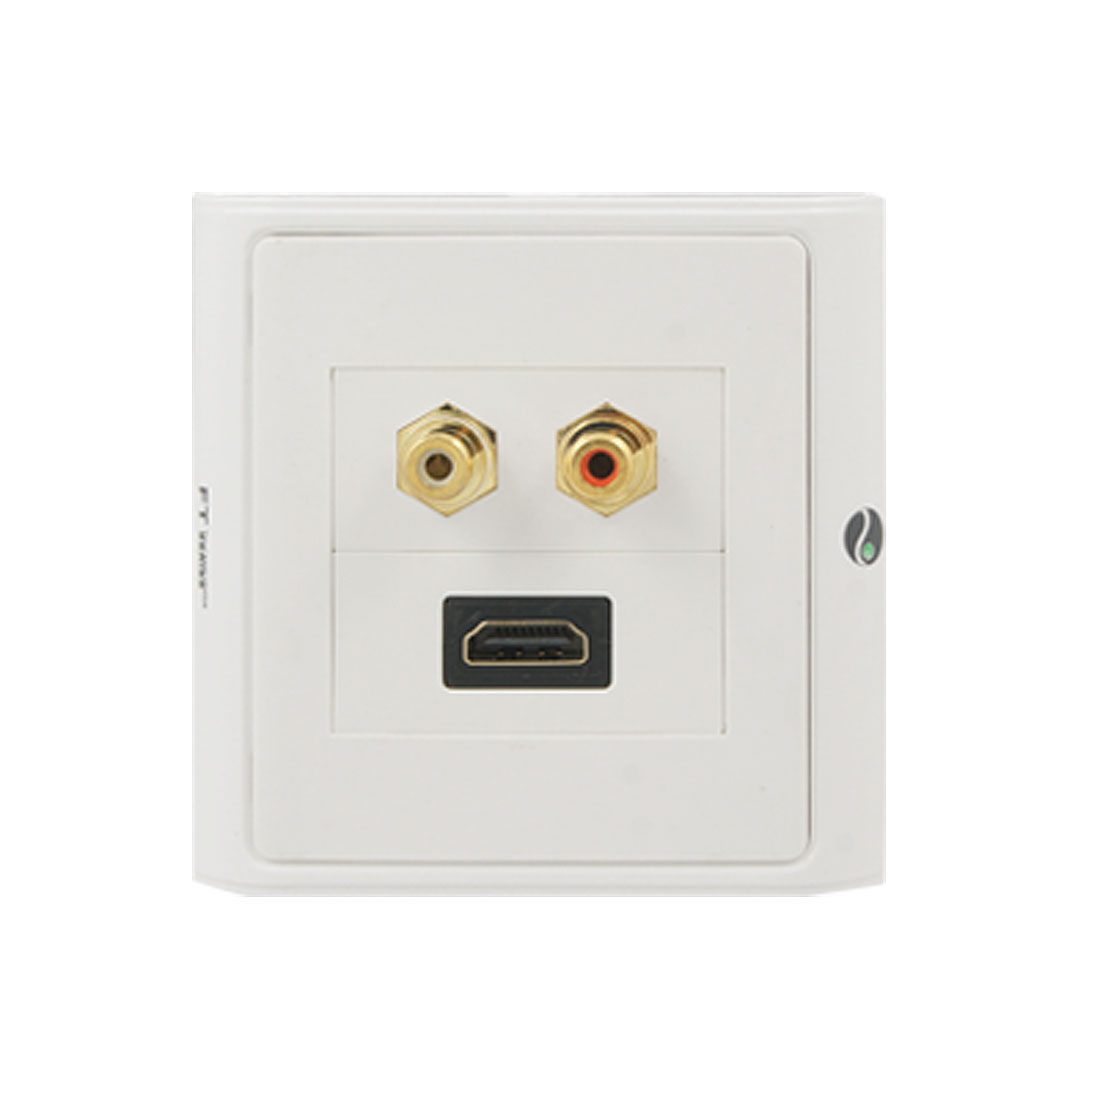 Audio Video 2 RCA Wall Plate and 1 HDMI Wall Plate